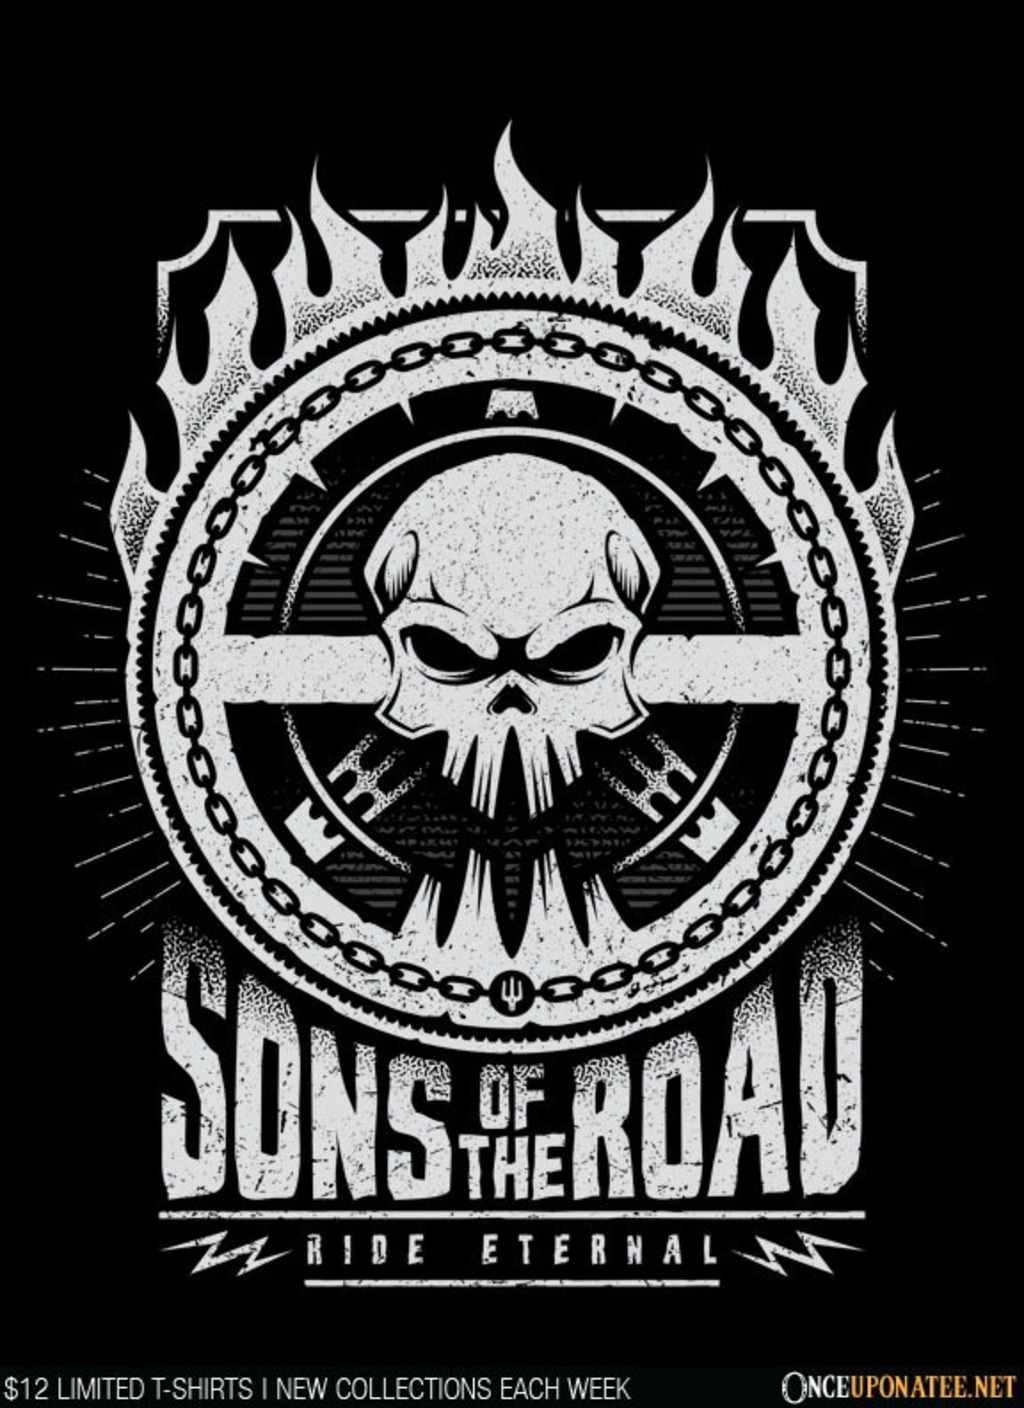 Once Upon a Tee: Sons of the Road